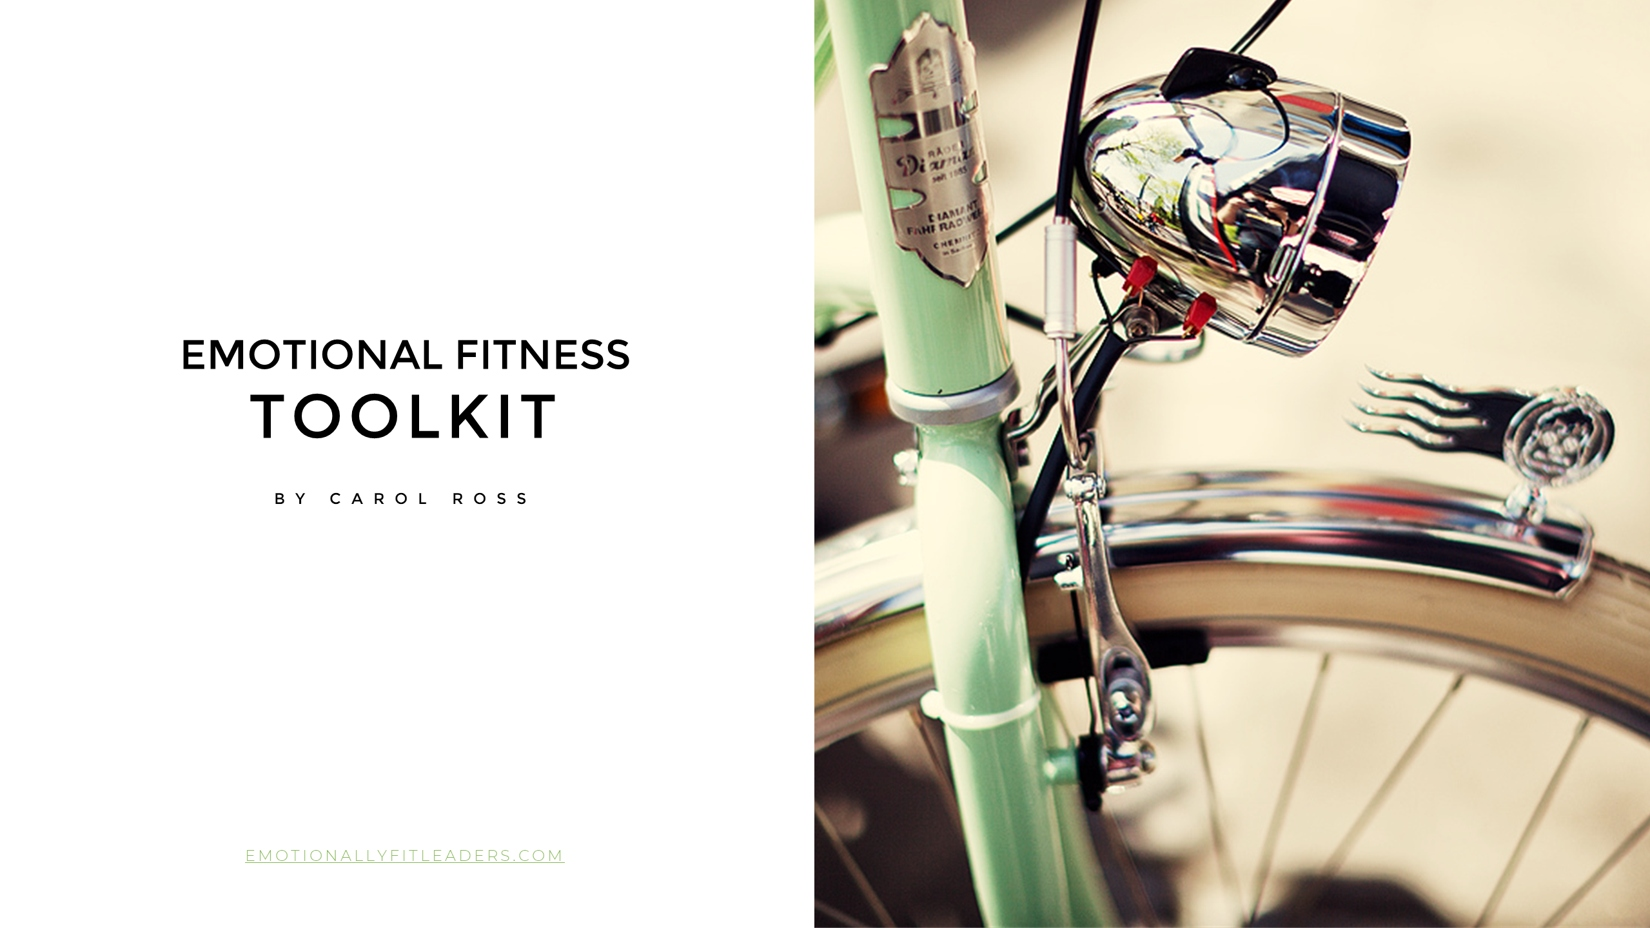 Emotional Fitness Toolkit 2020